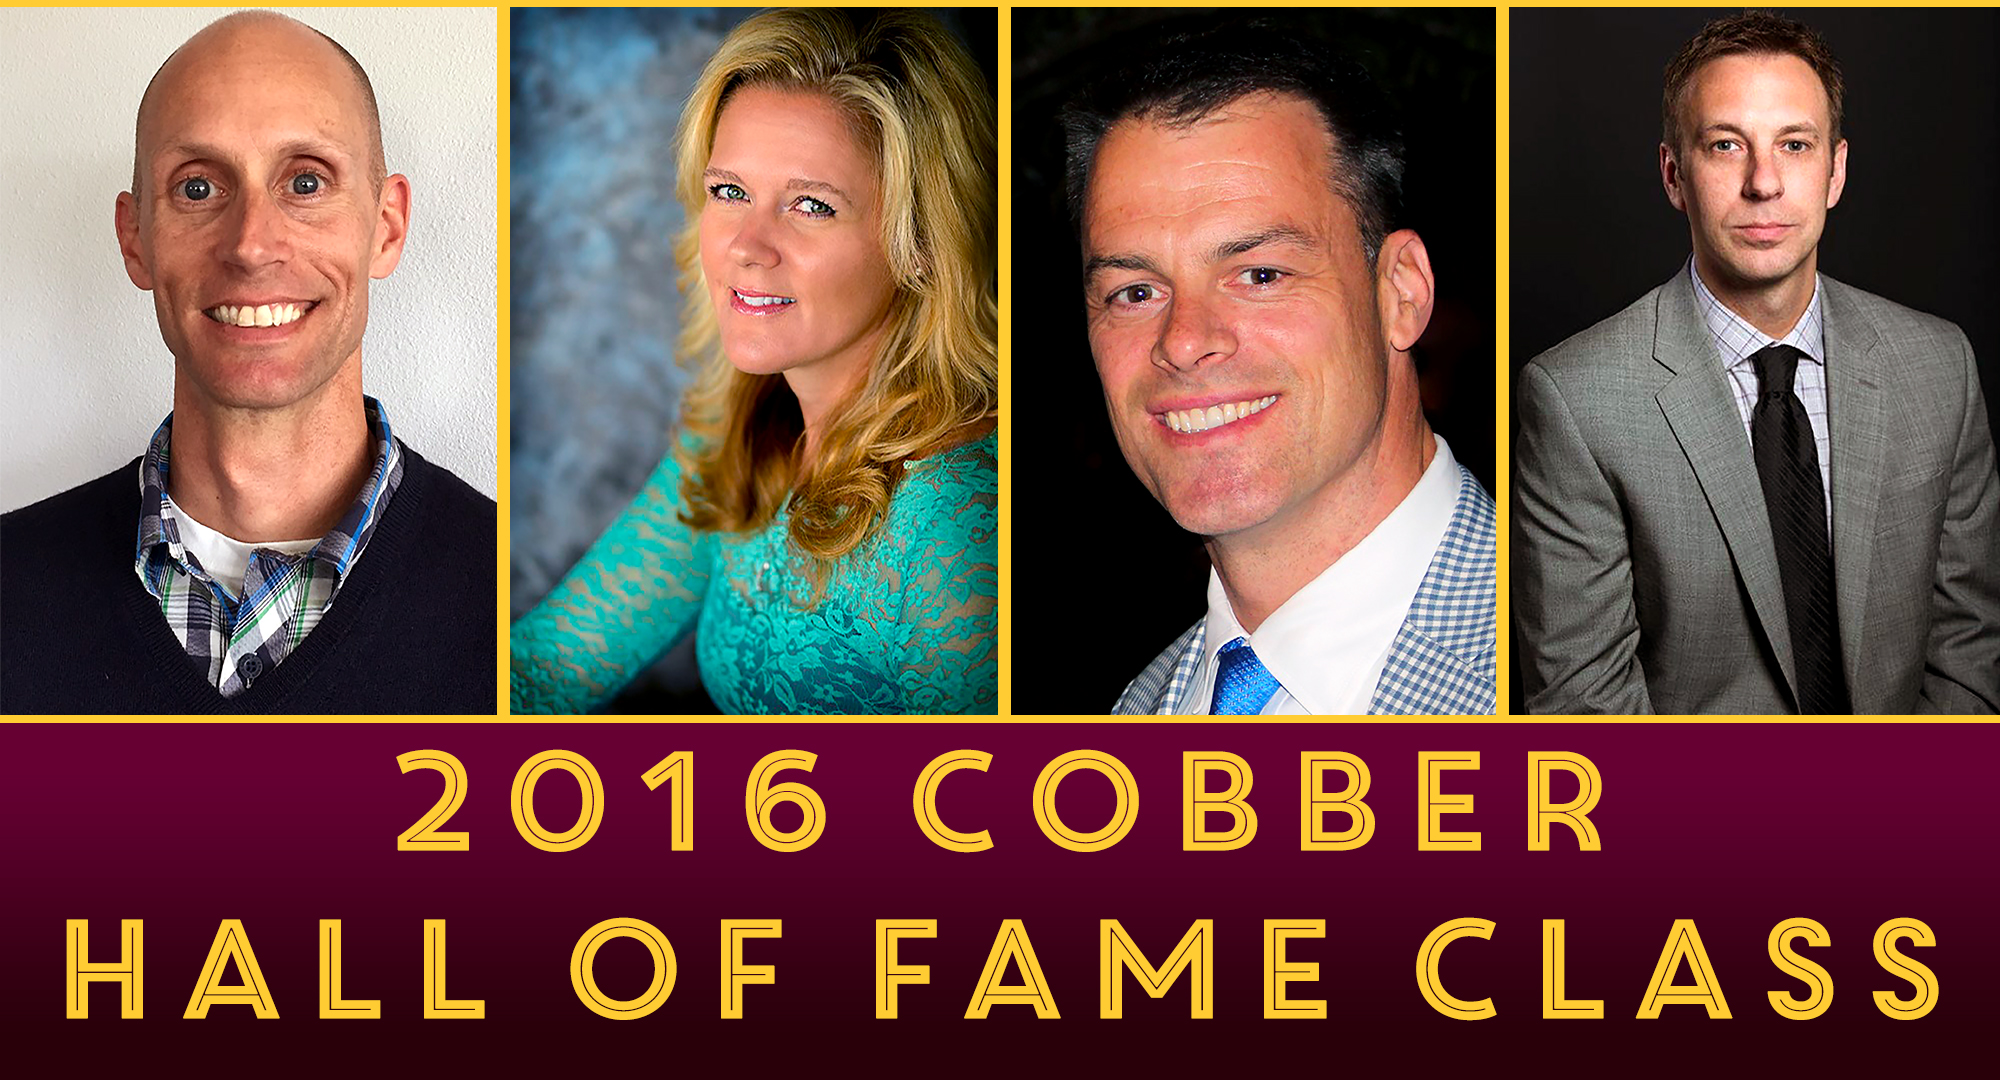 The 2016 Concordia Hall of Fame inductees are (L-R): Jason Trichler '93, Erica (Hanson) Reid '94, Marc Terris '94 and Todd Hashbarger '98.